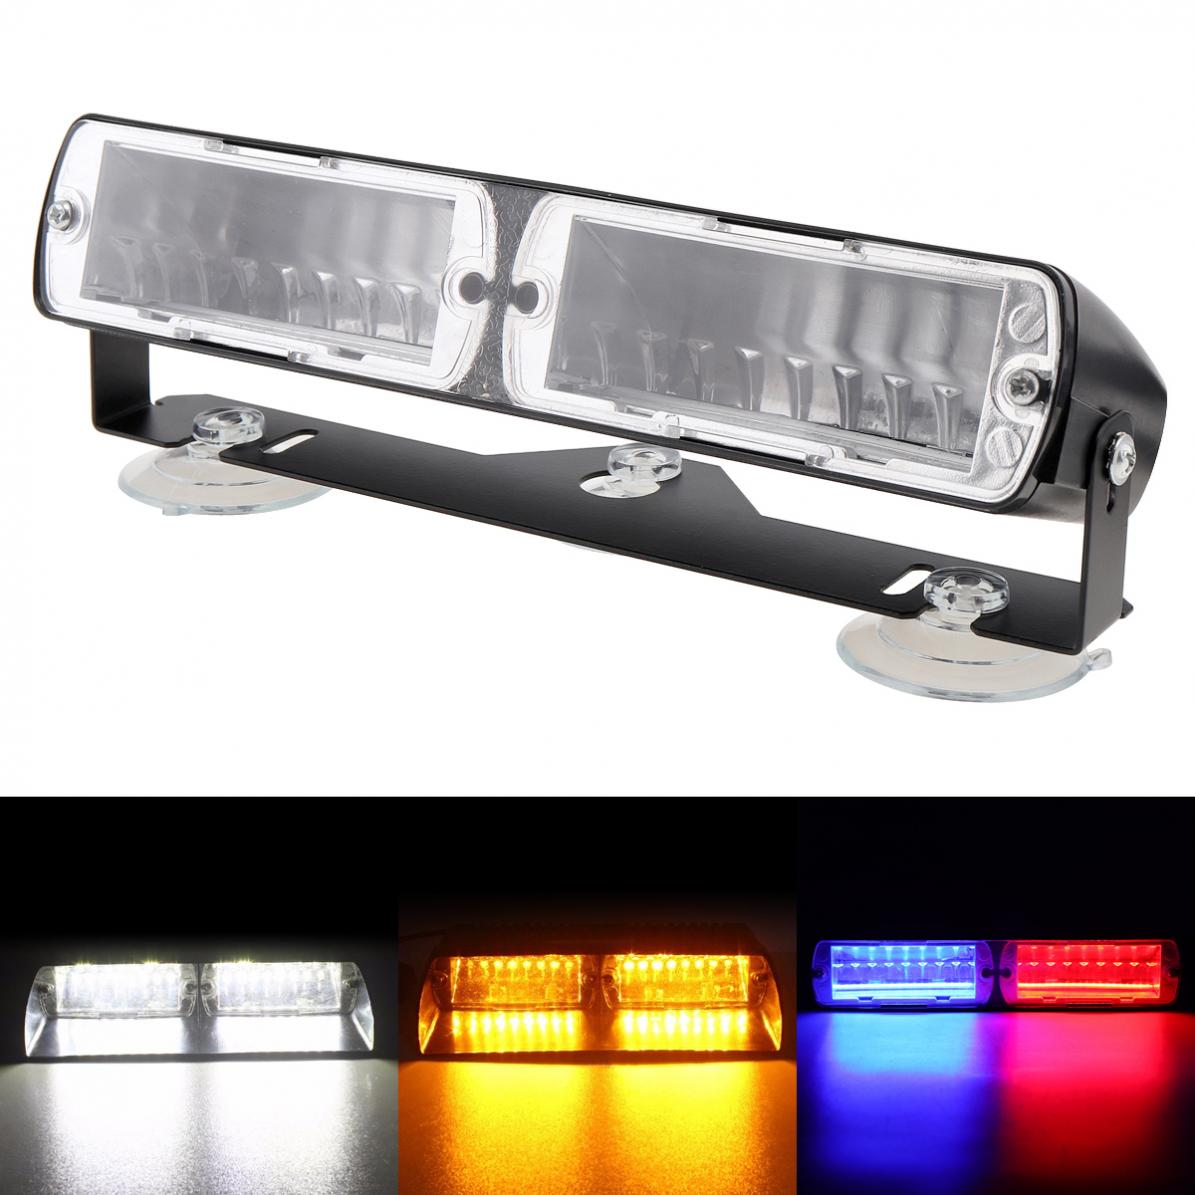 16LED 48W Viper S2 Super Bright Signal Flashing Led Warning Light Police Strobe Flash Emergency Lights цена 2017